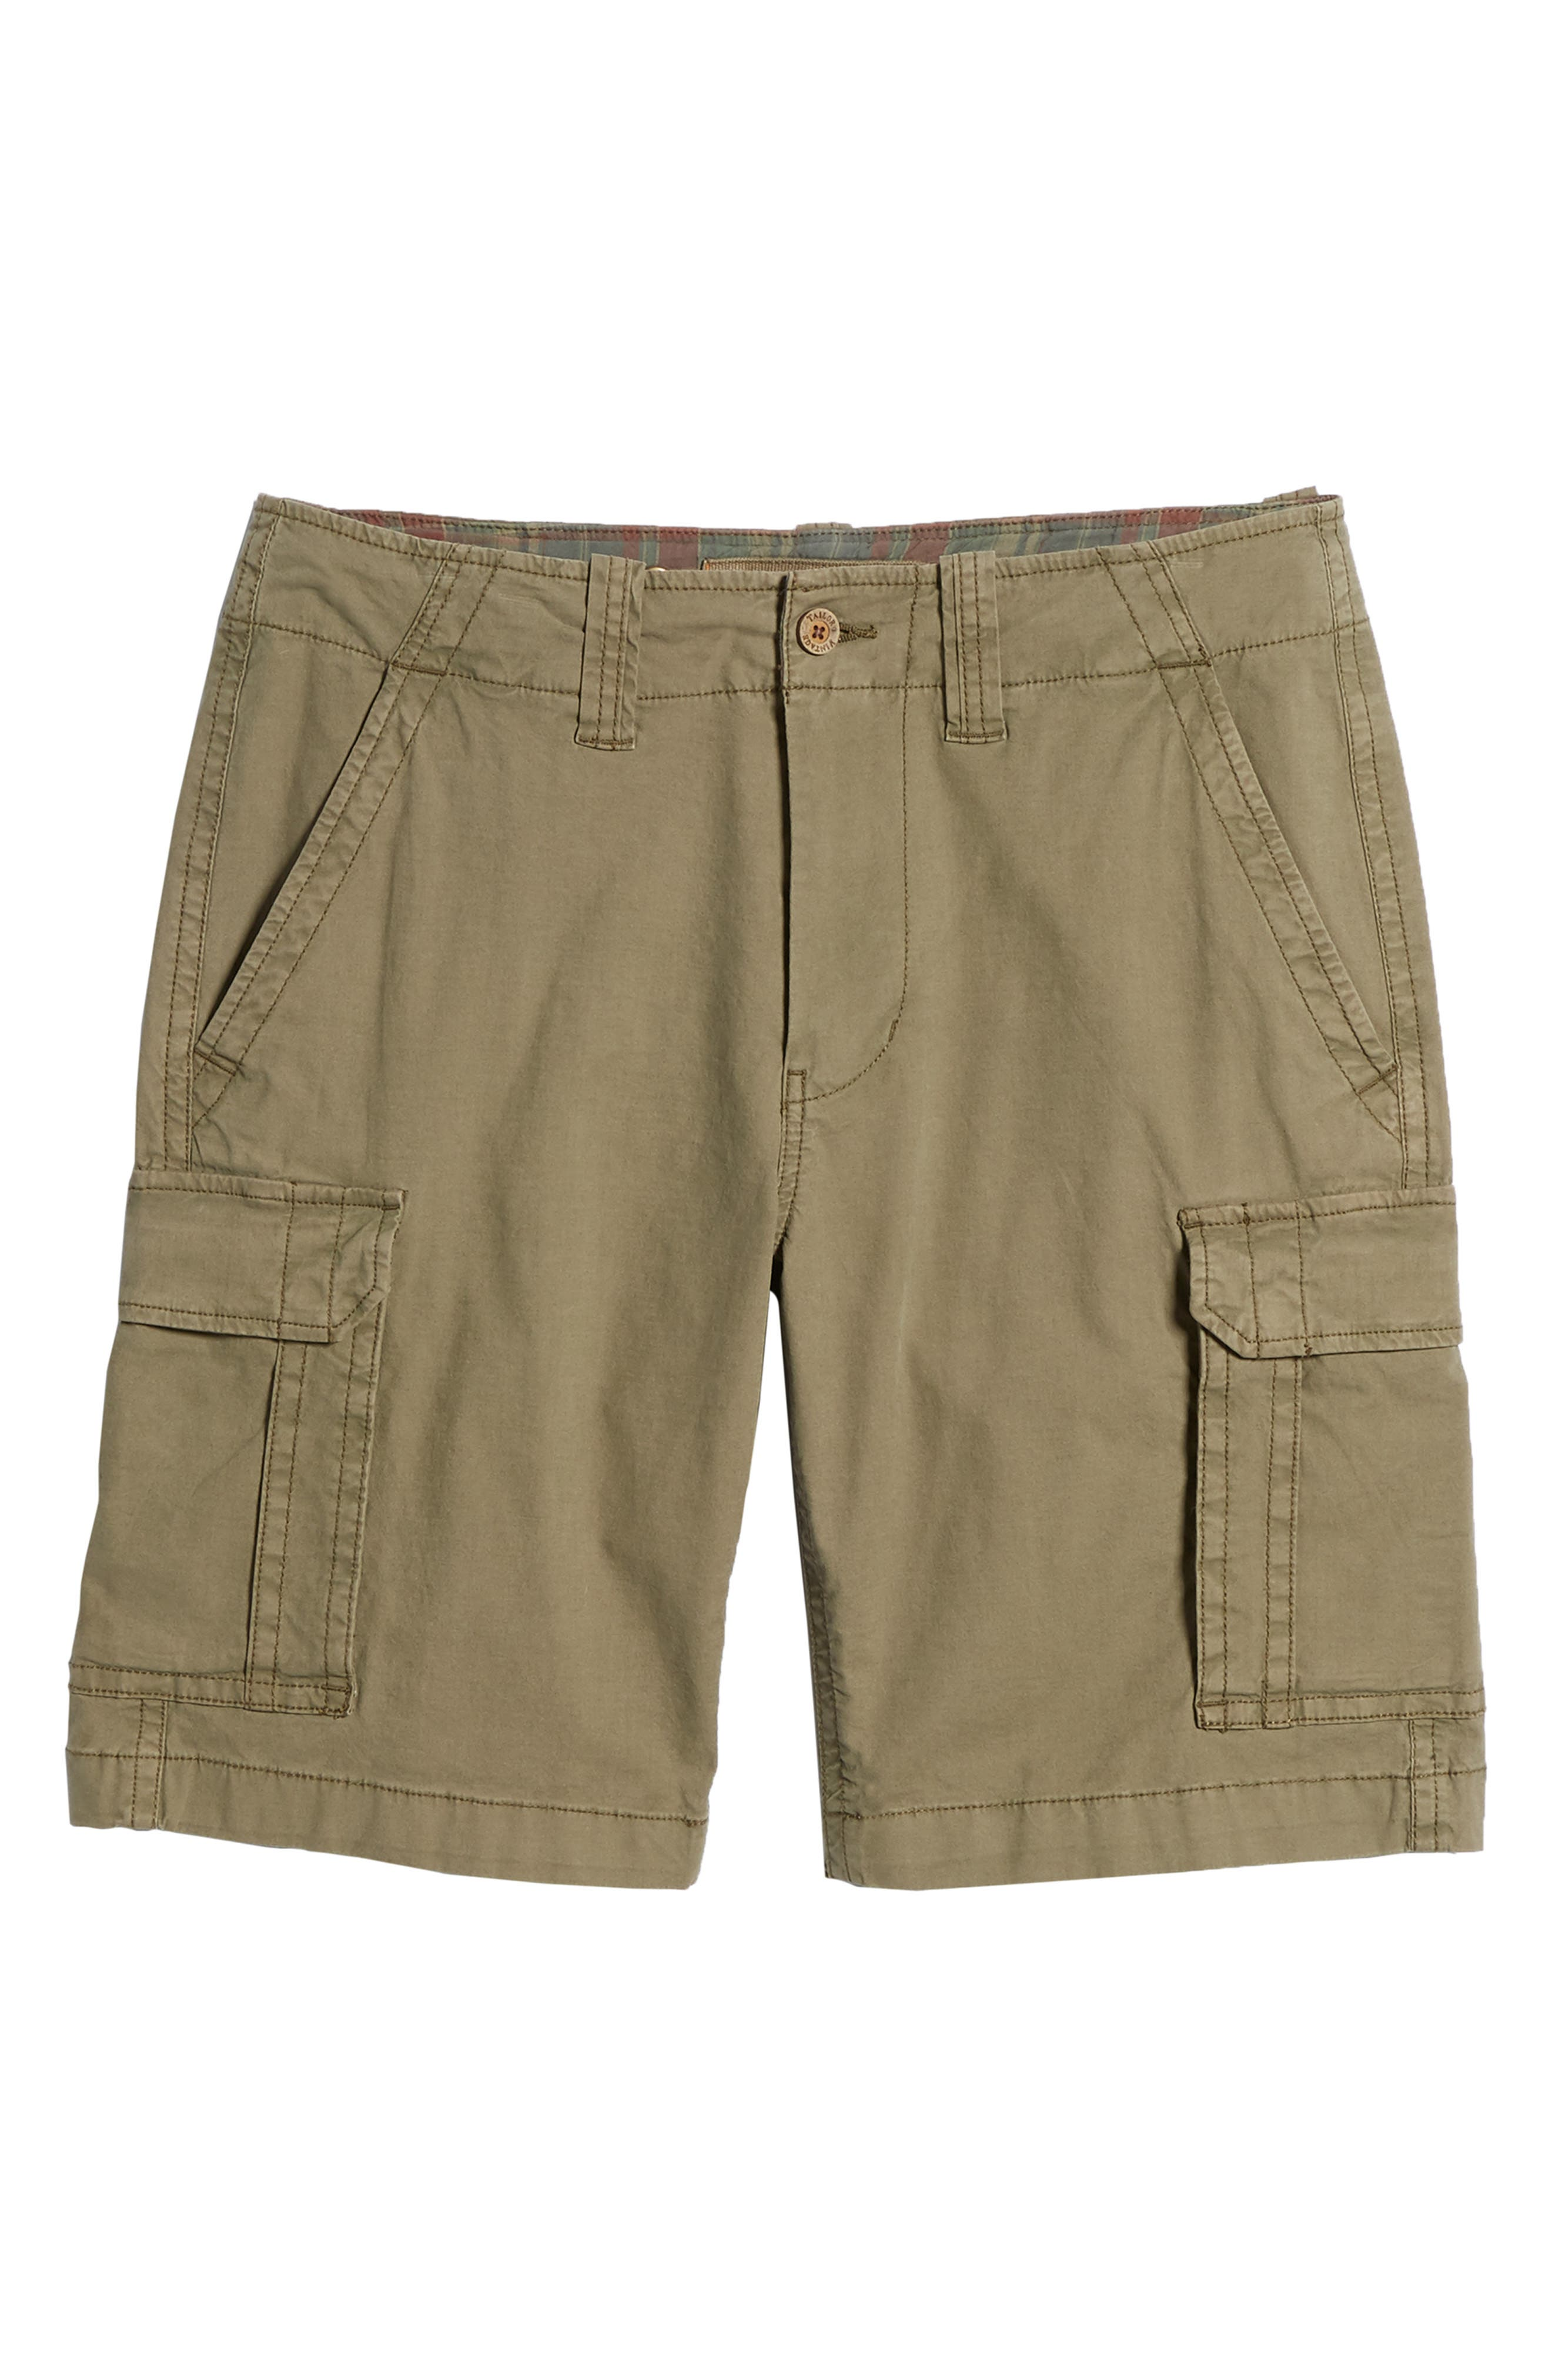 Stretch Canvas Cargo Shorts,                             Alternate thumbnail 6, color,                             Army